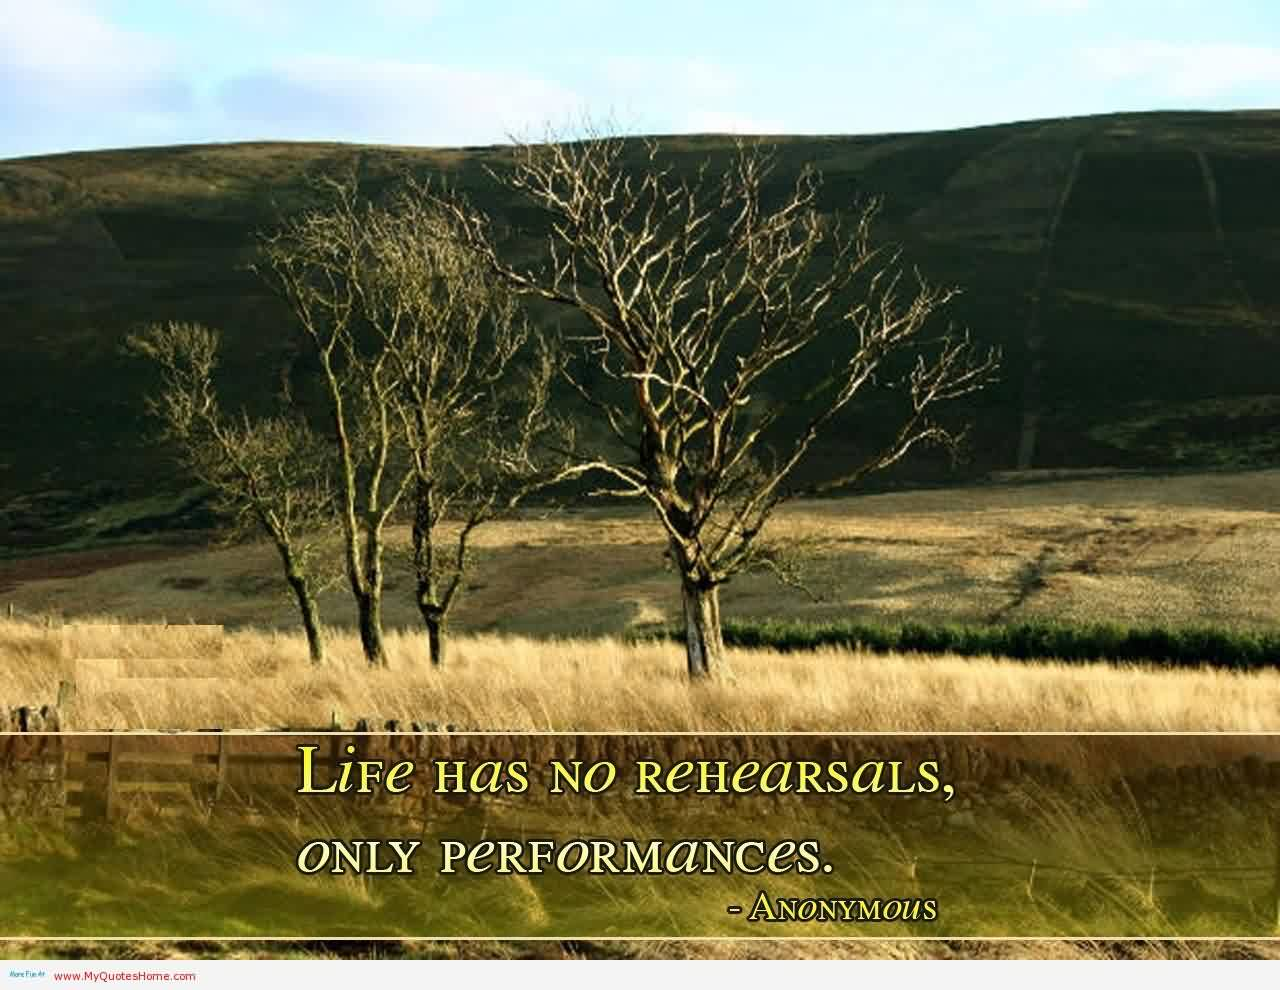 Amazing Life Quotes Images - Life has only performances